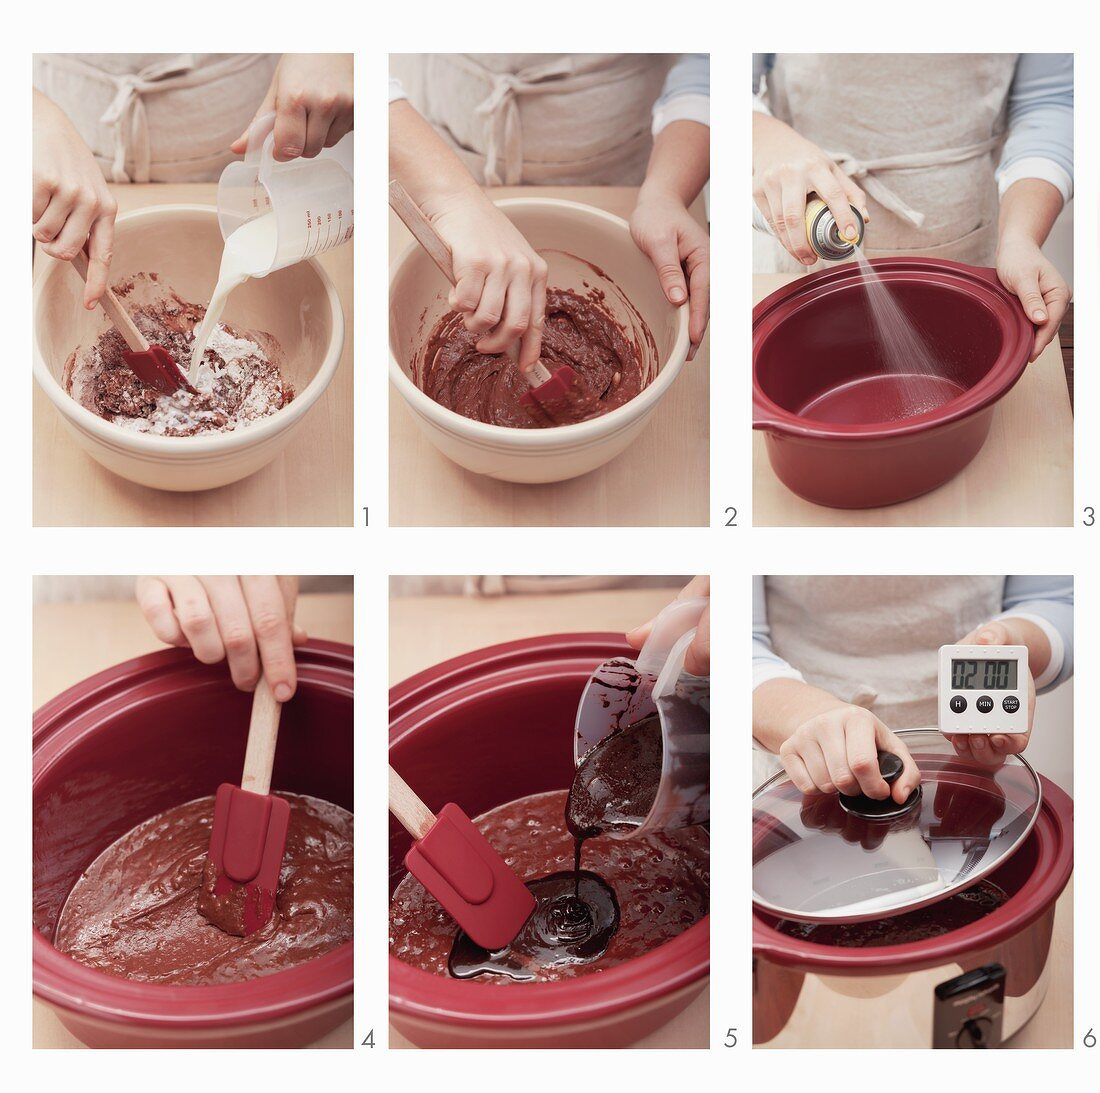 Hot Fudge Cake being made in a slow cooker